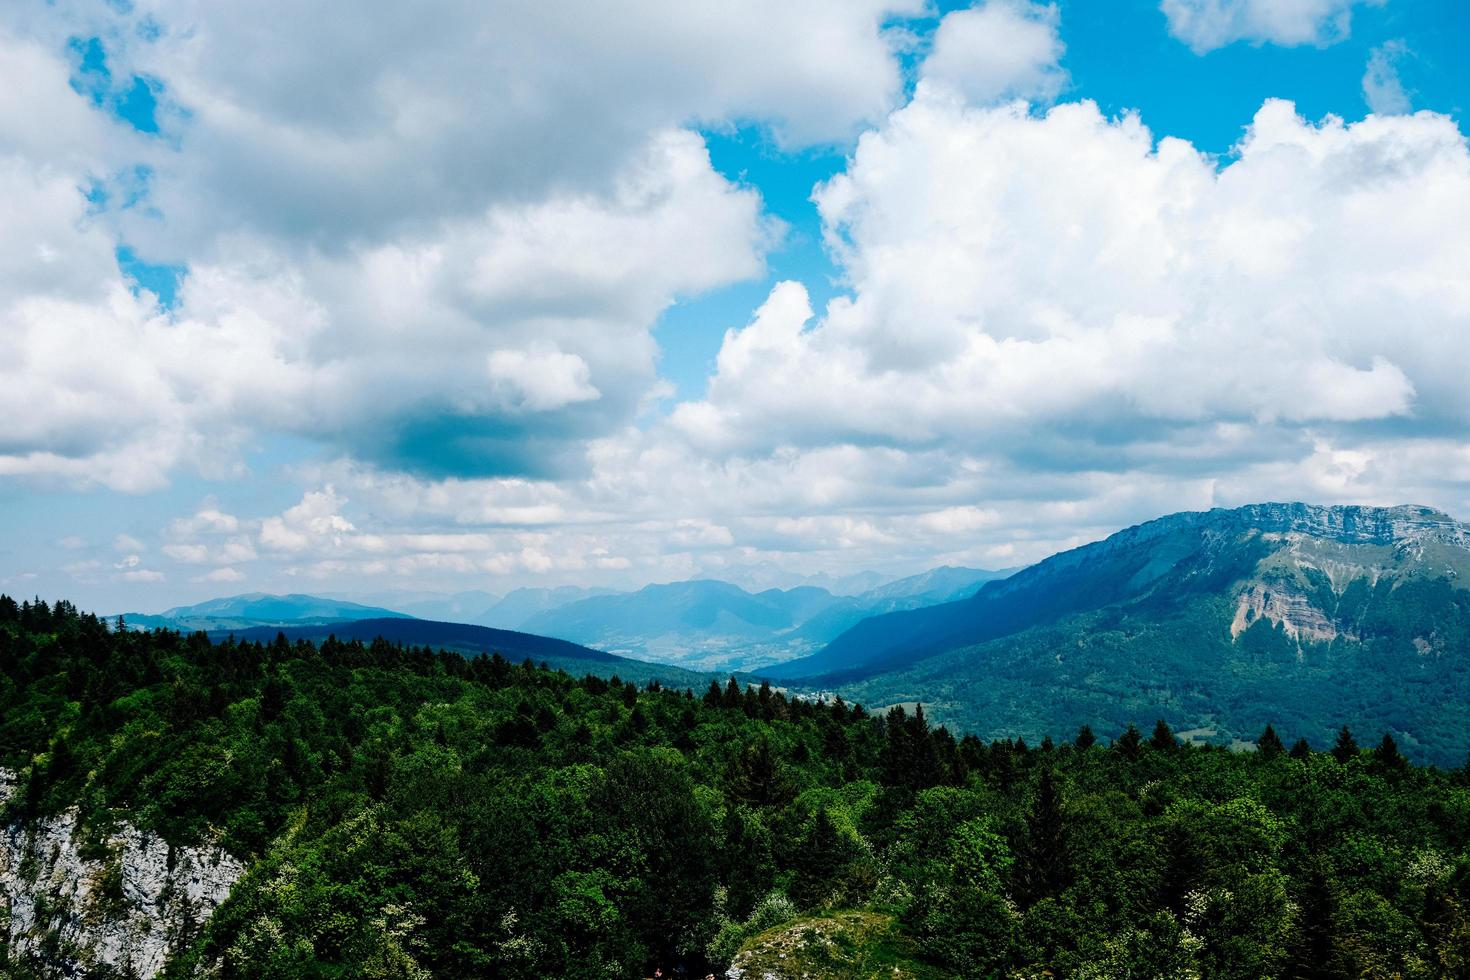 Trees and mountains under cloudy blue sky photo